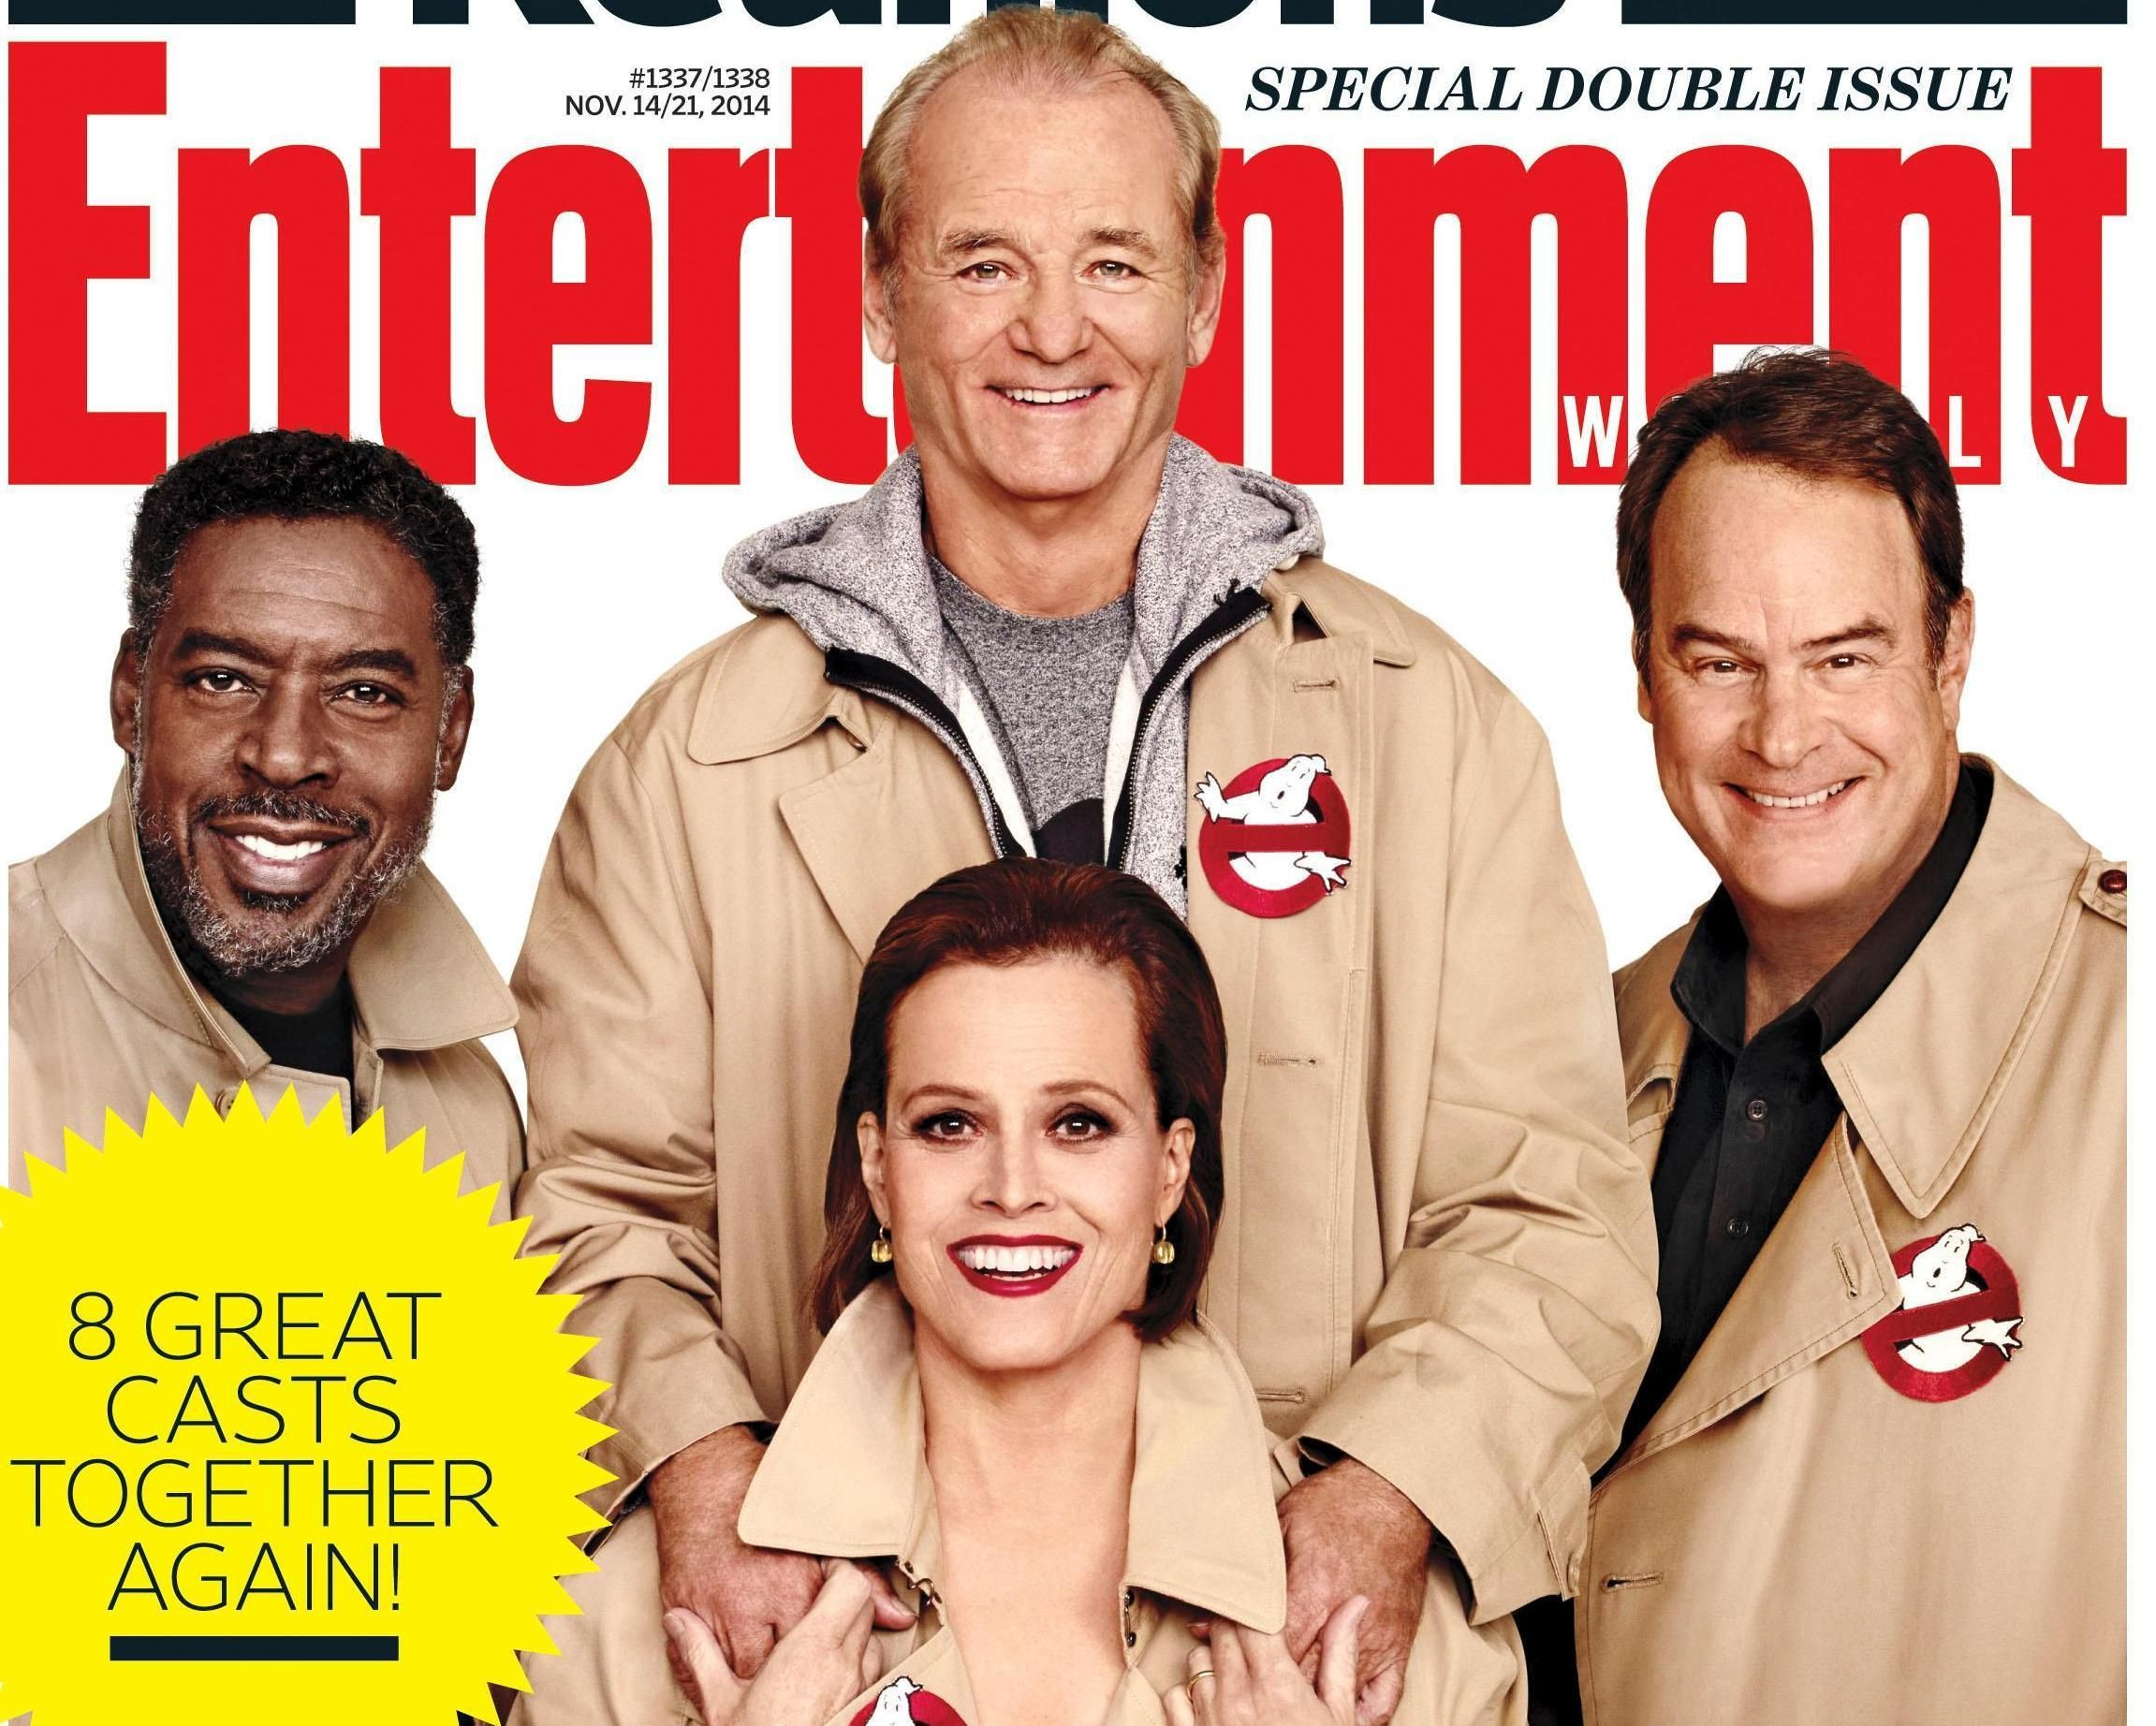 Ghostbusters Stars Reunite On The Cover Of Entertainment Weekly Ghostbusters Ghostbusters Movie Ghostbusters Cast